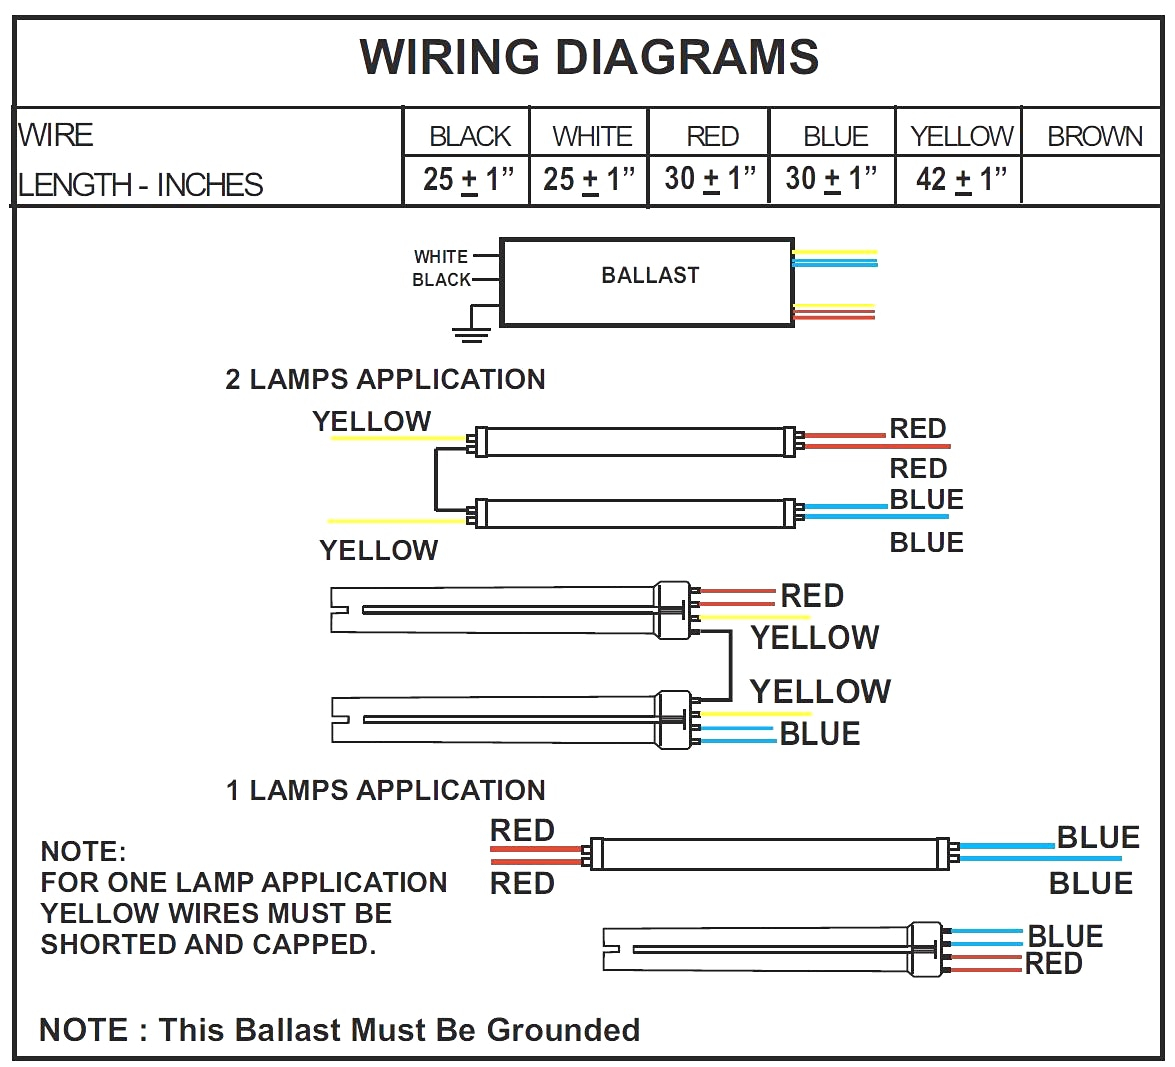 Lamp Ballast Wiring Diagram on t5 emergency, bodine b50, instant start, philips advance, ge electronic, iota emergency, 1 lamp t12, metal halide, bodine emergency, t8 electronic,